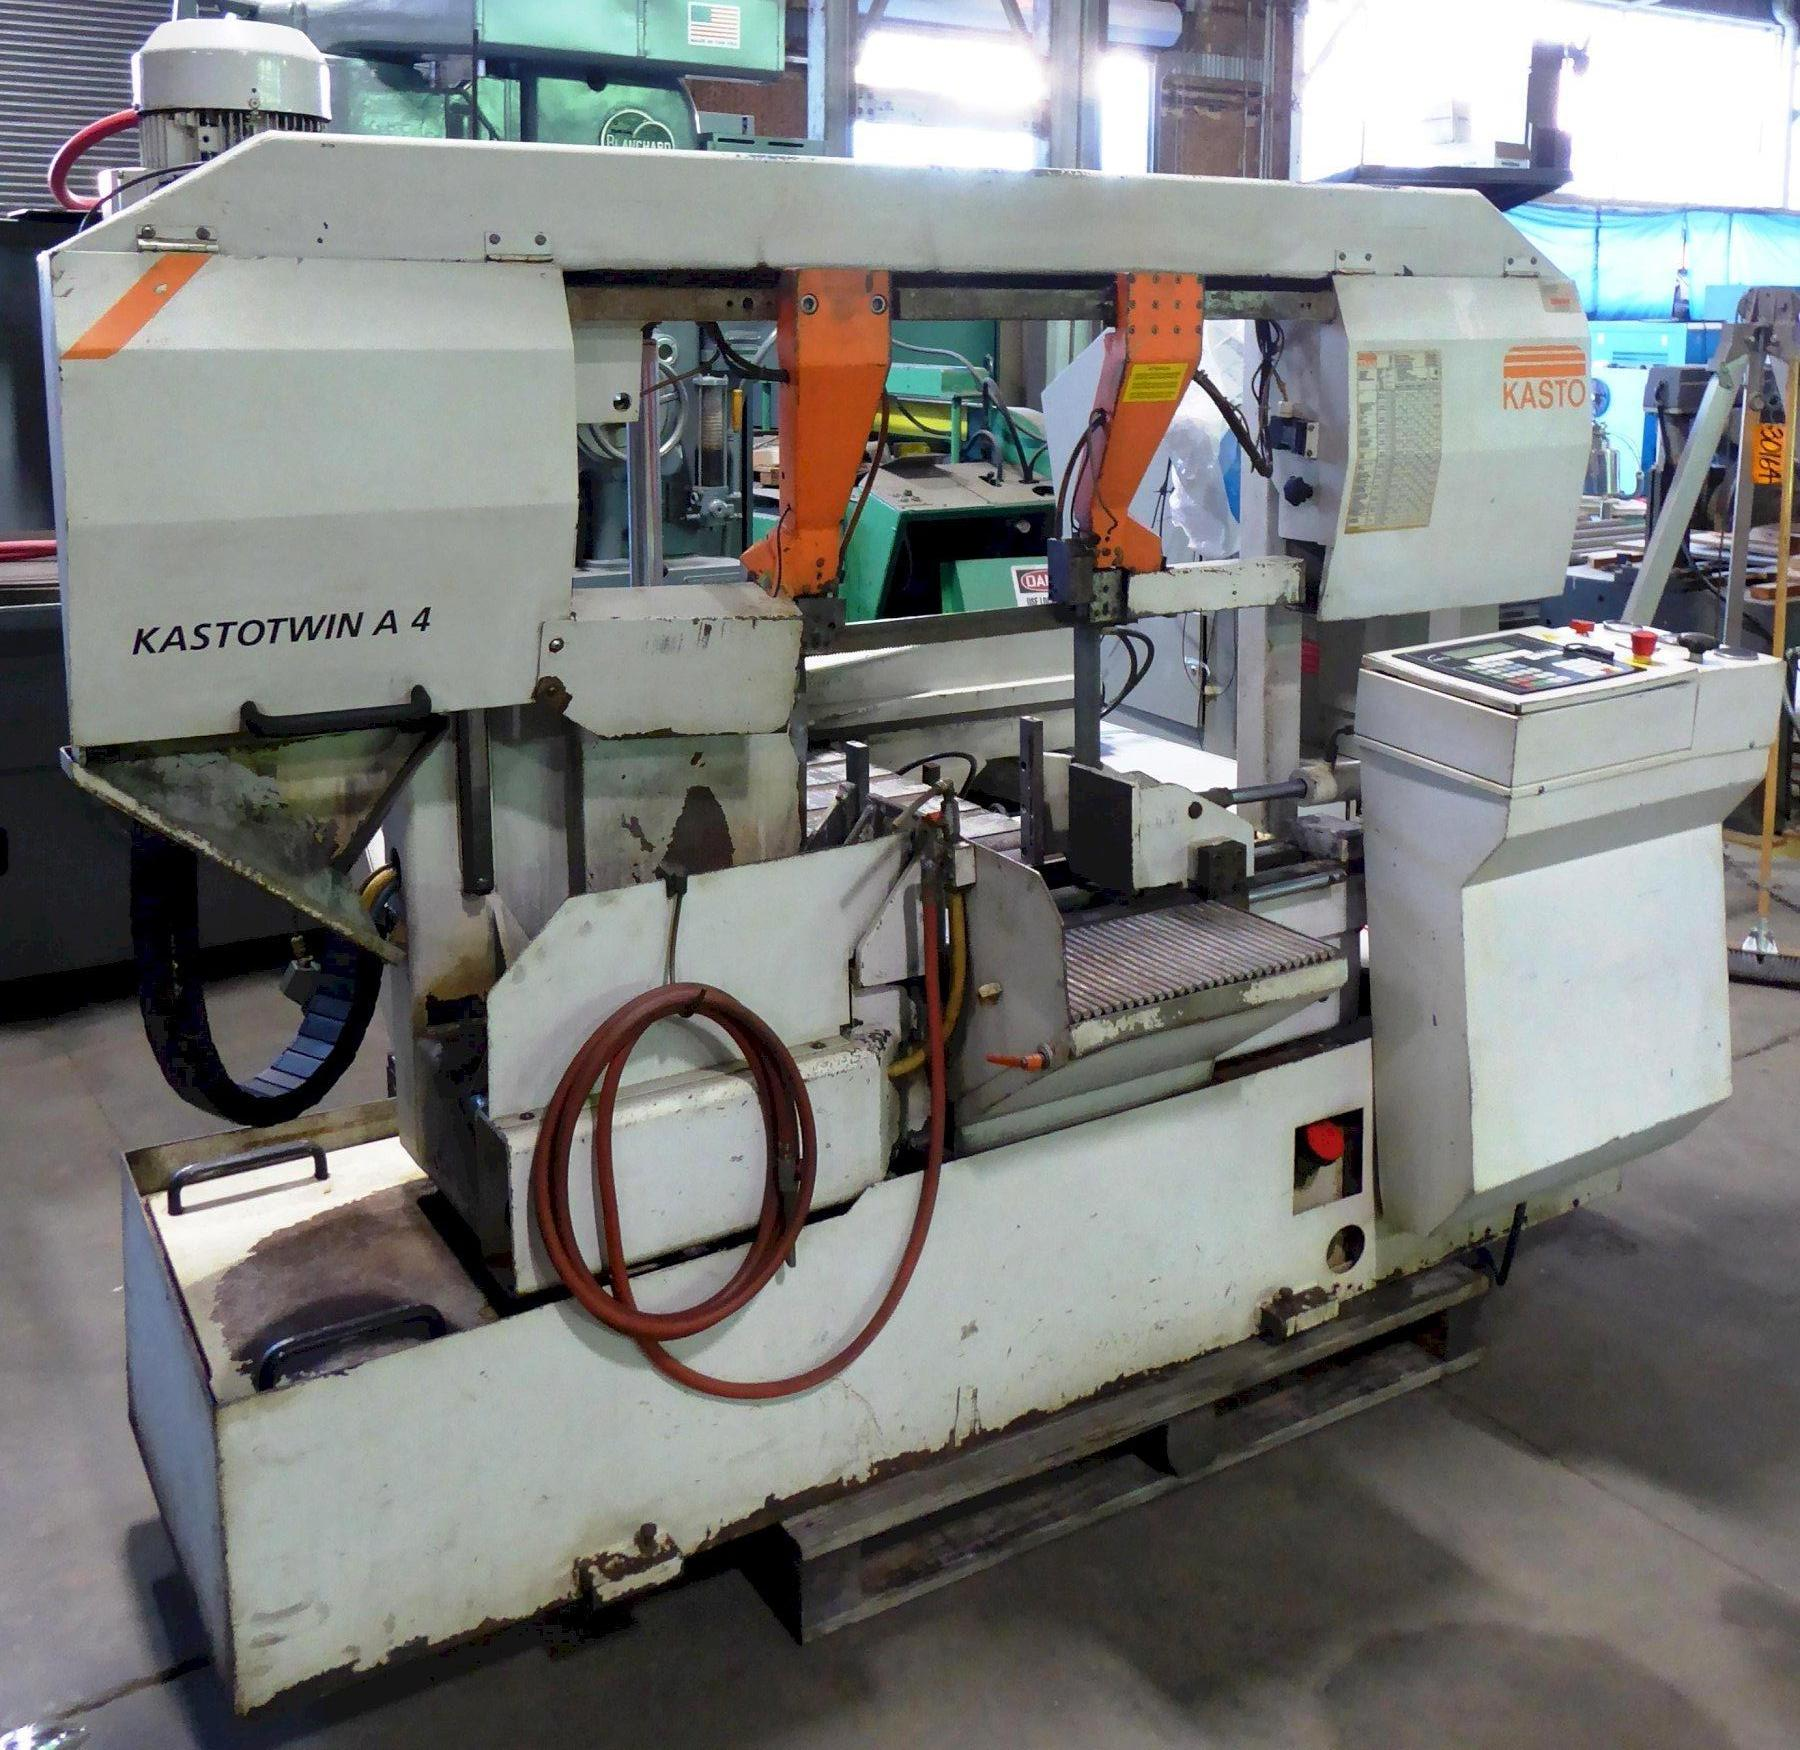 "15"" x 15"" Kasto Horizontal Band Saw KASTOtwin A4 CNC, Auto. Bar Feed, 15-3/4"" Rounds, 2000"